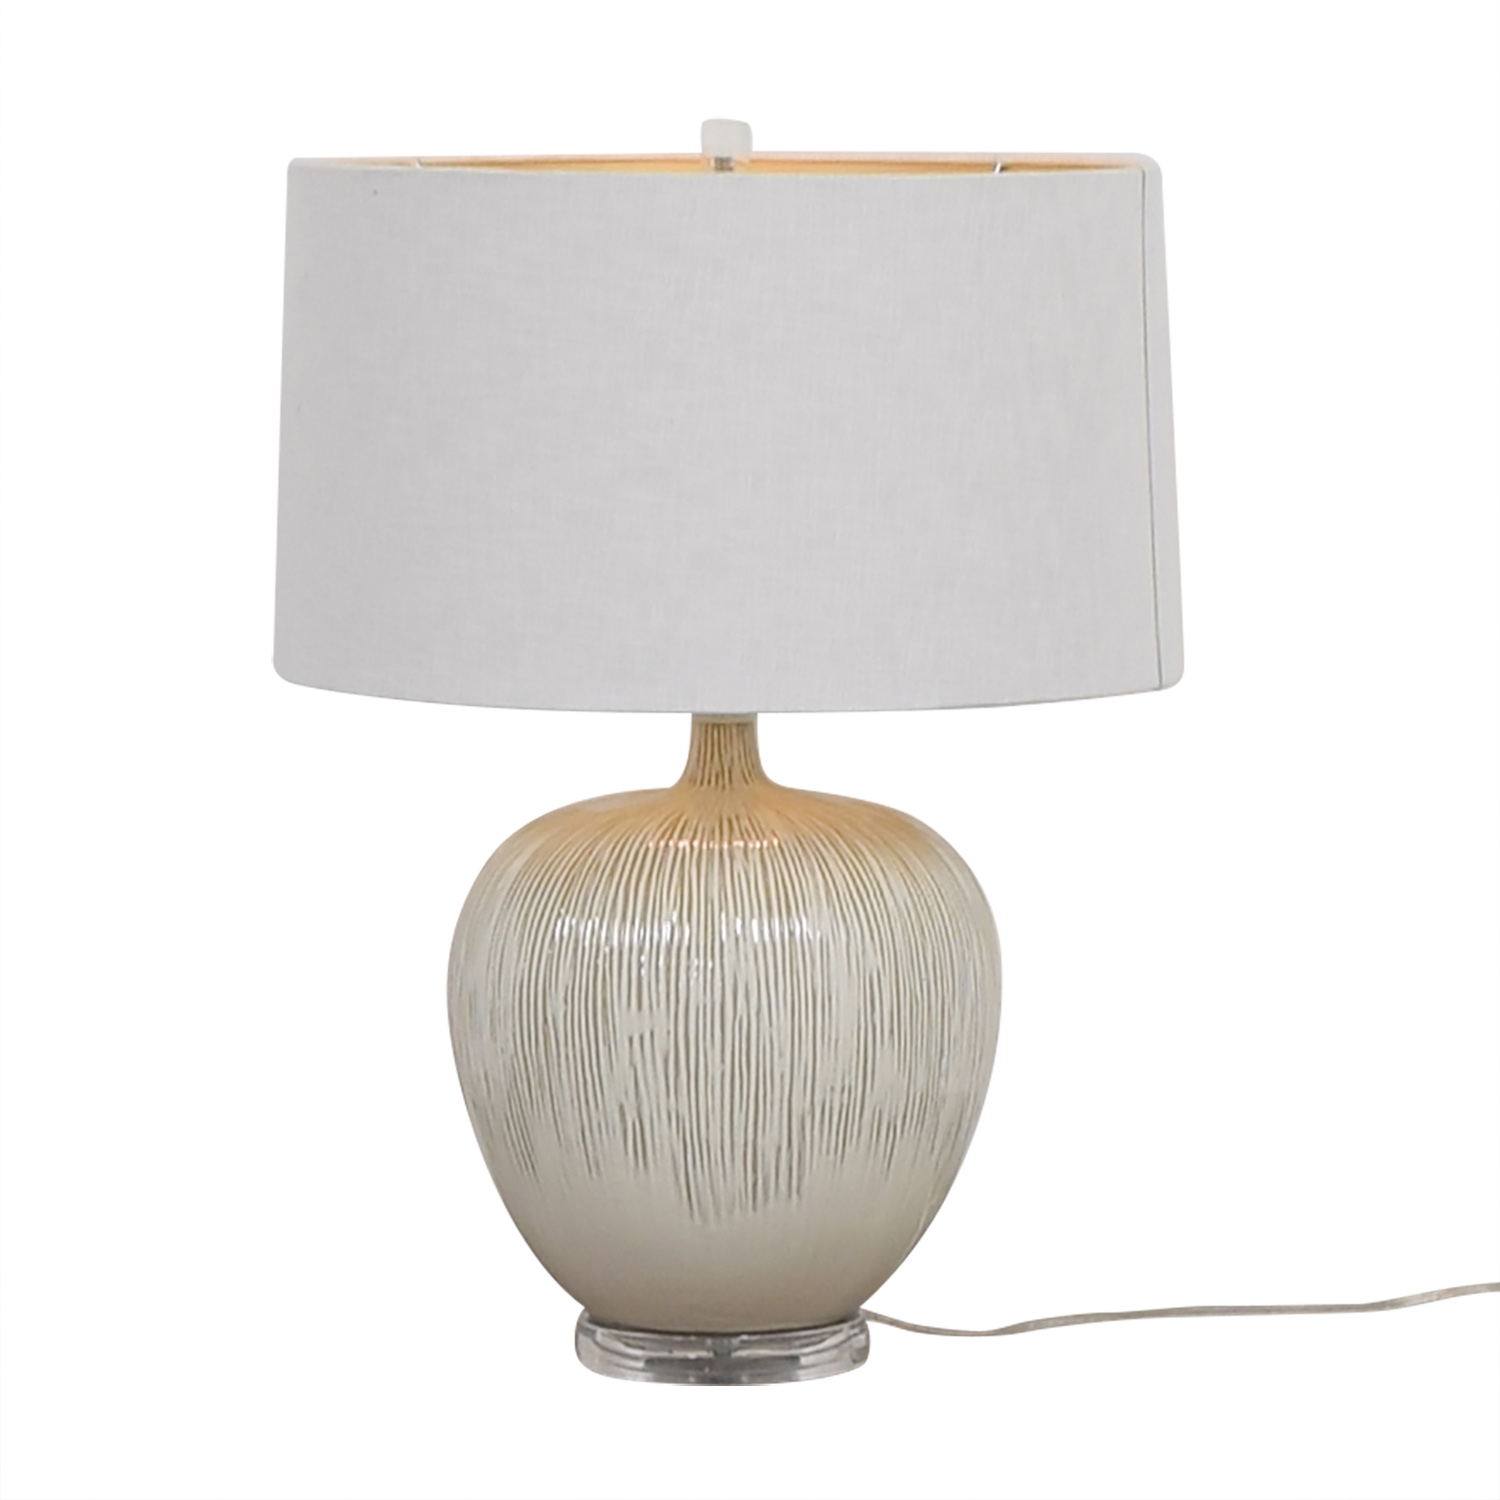 France & Sons White Table Lamp / Lamps